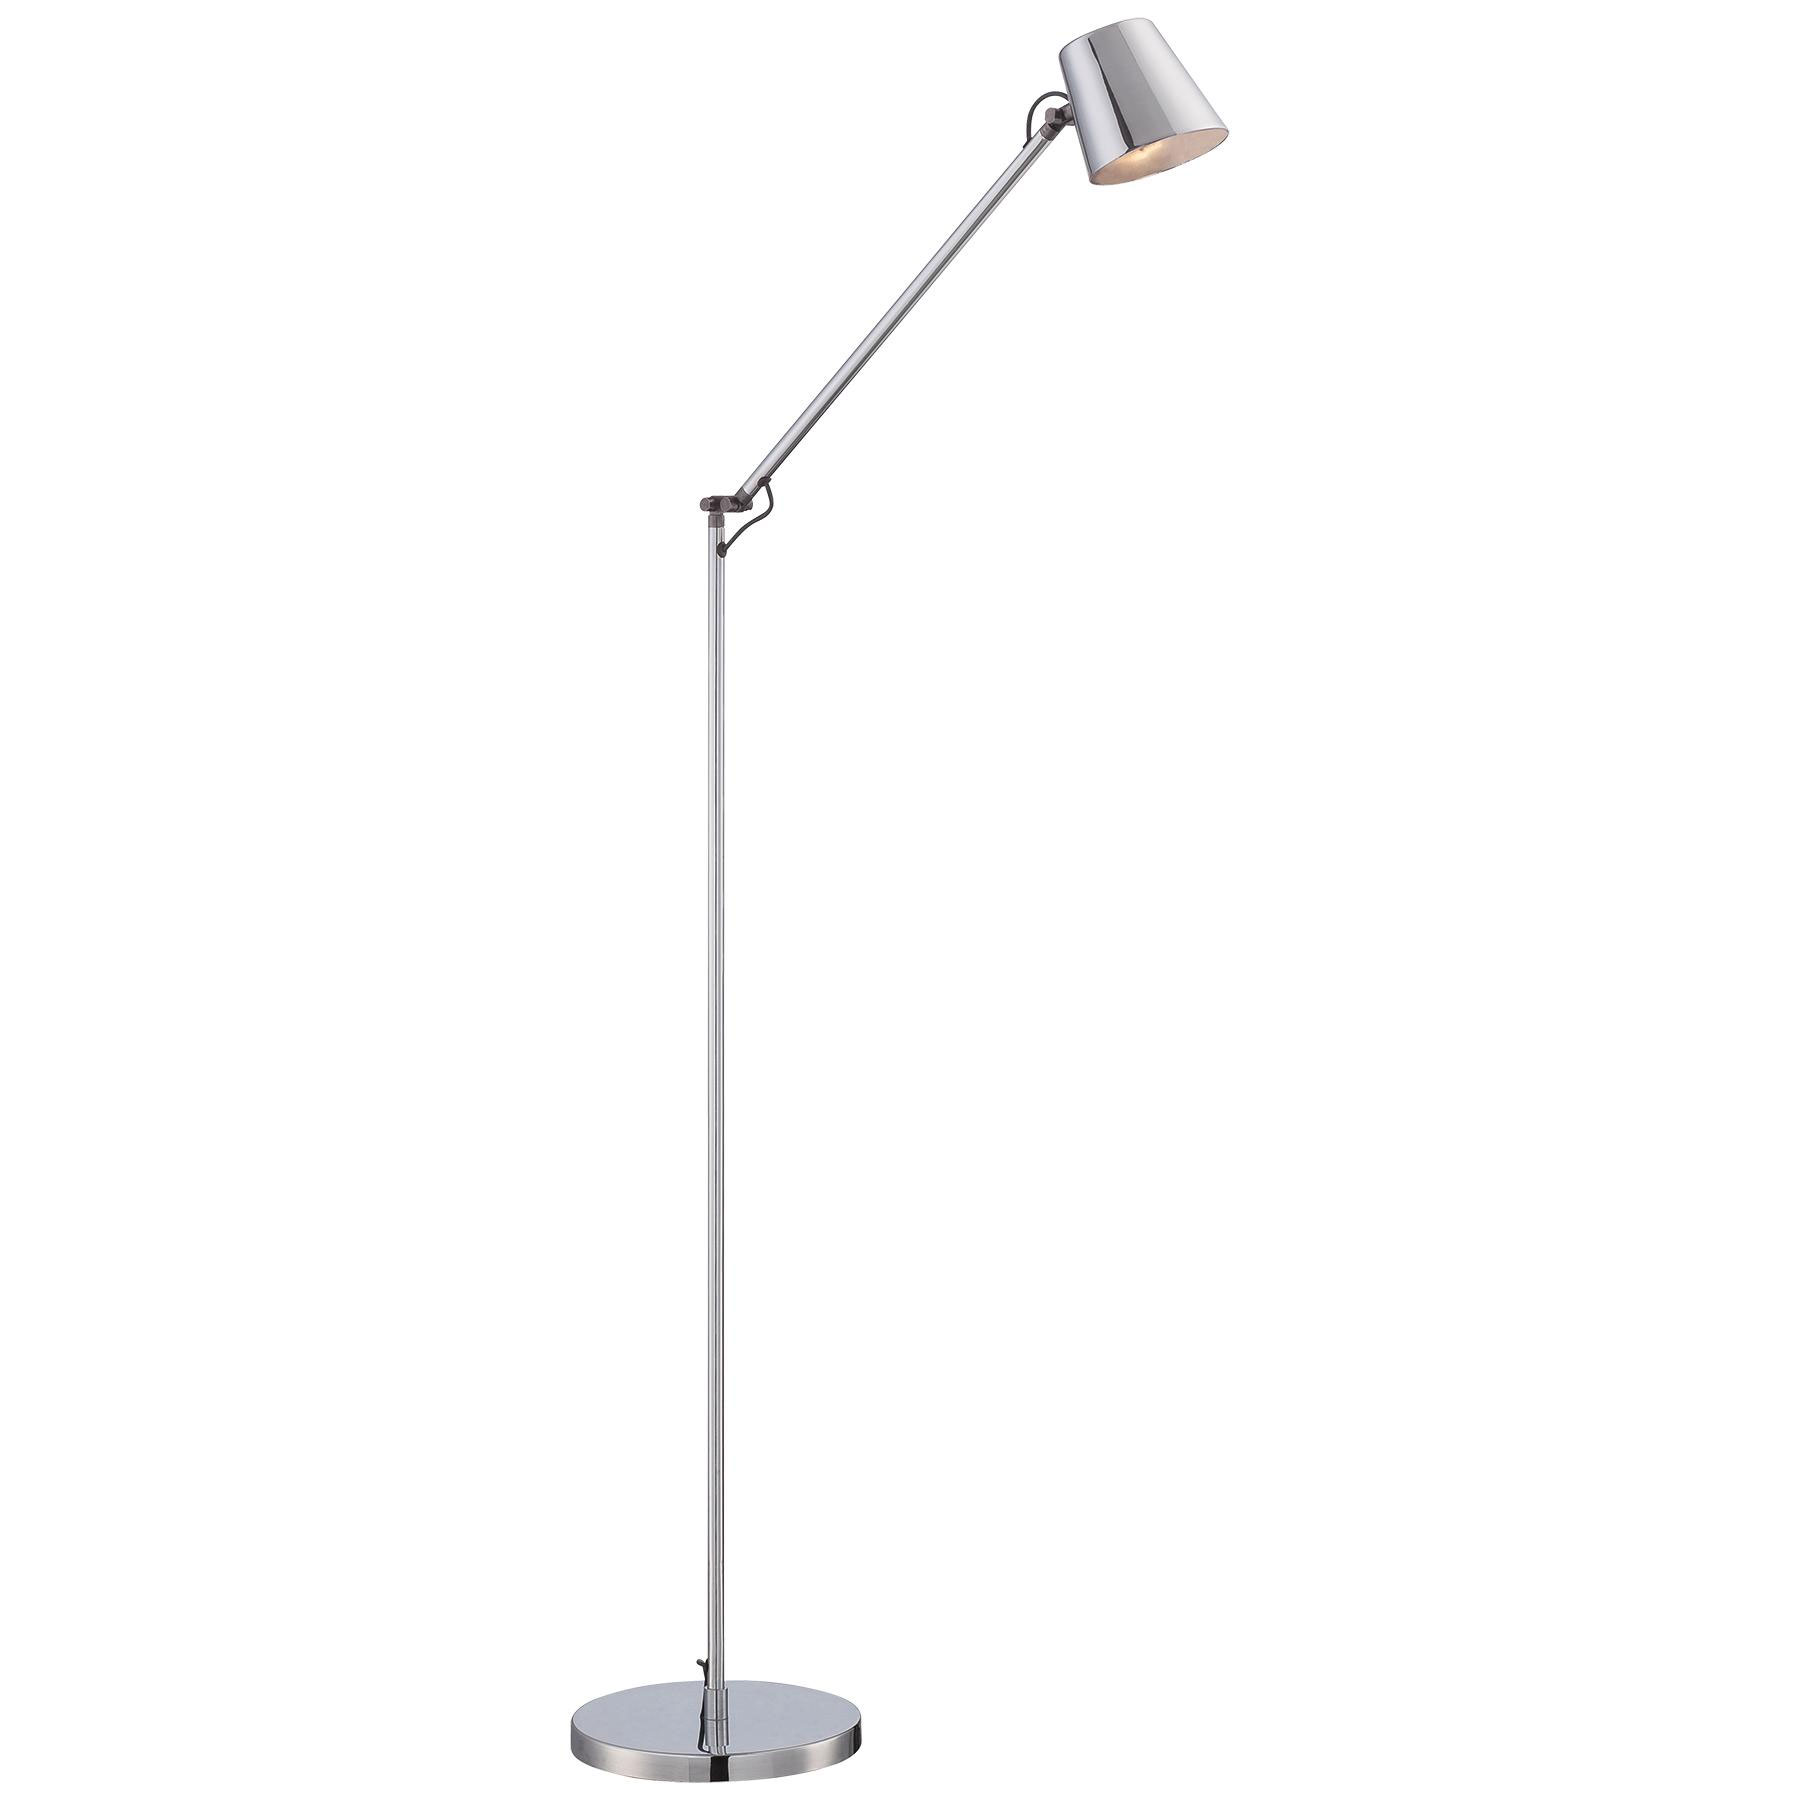 P303 led floor task lamp by george kovacs p303 2 077 l mozeypictures Image collections